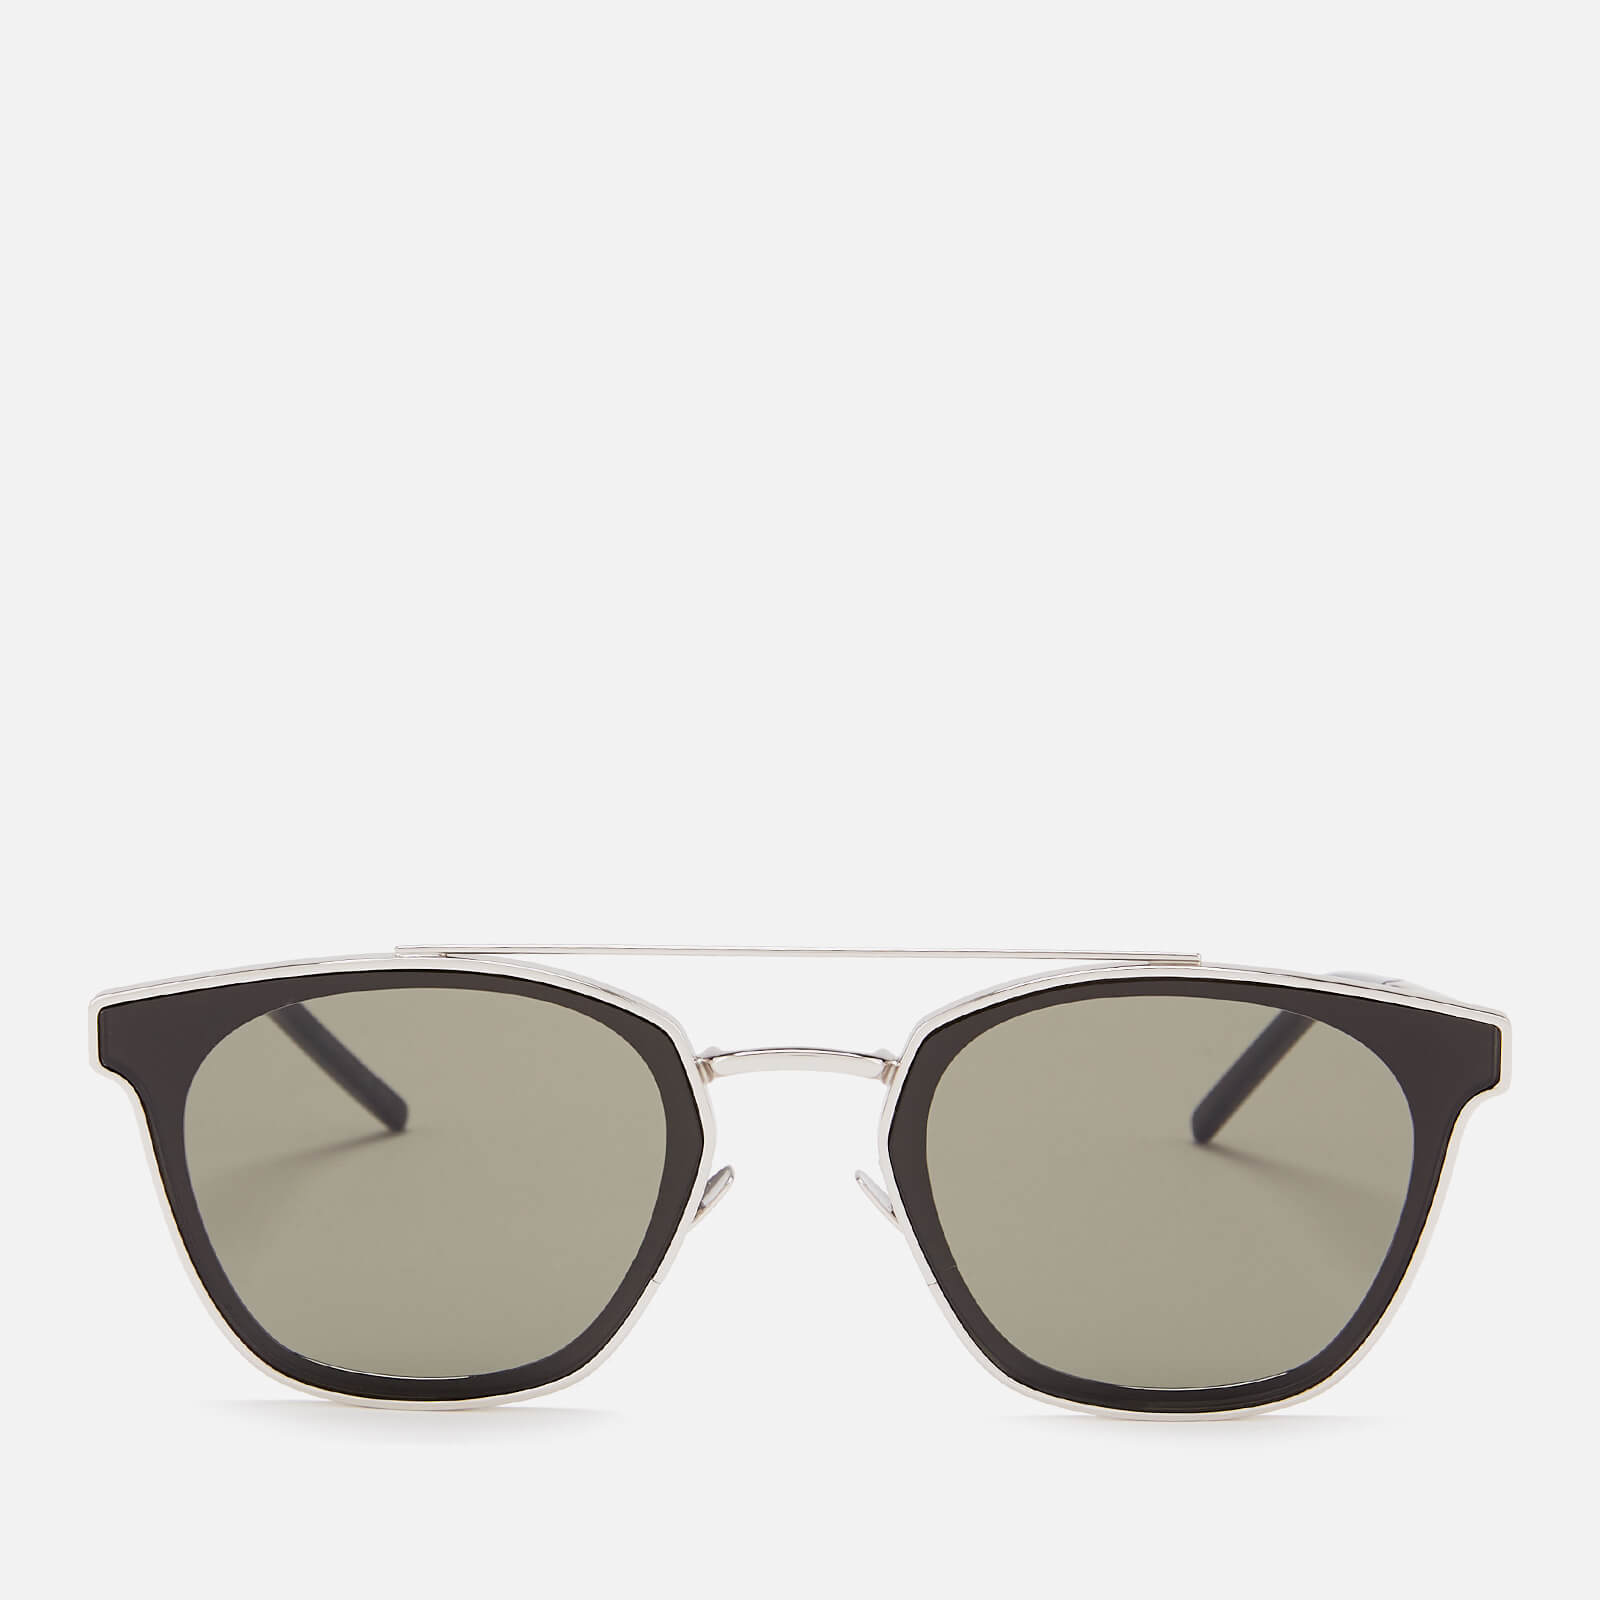 f376476e9b Saint Laurent Aviator Style Sunglasses - Silver - Free UK Delivery over £50